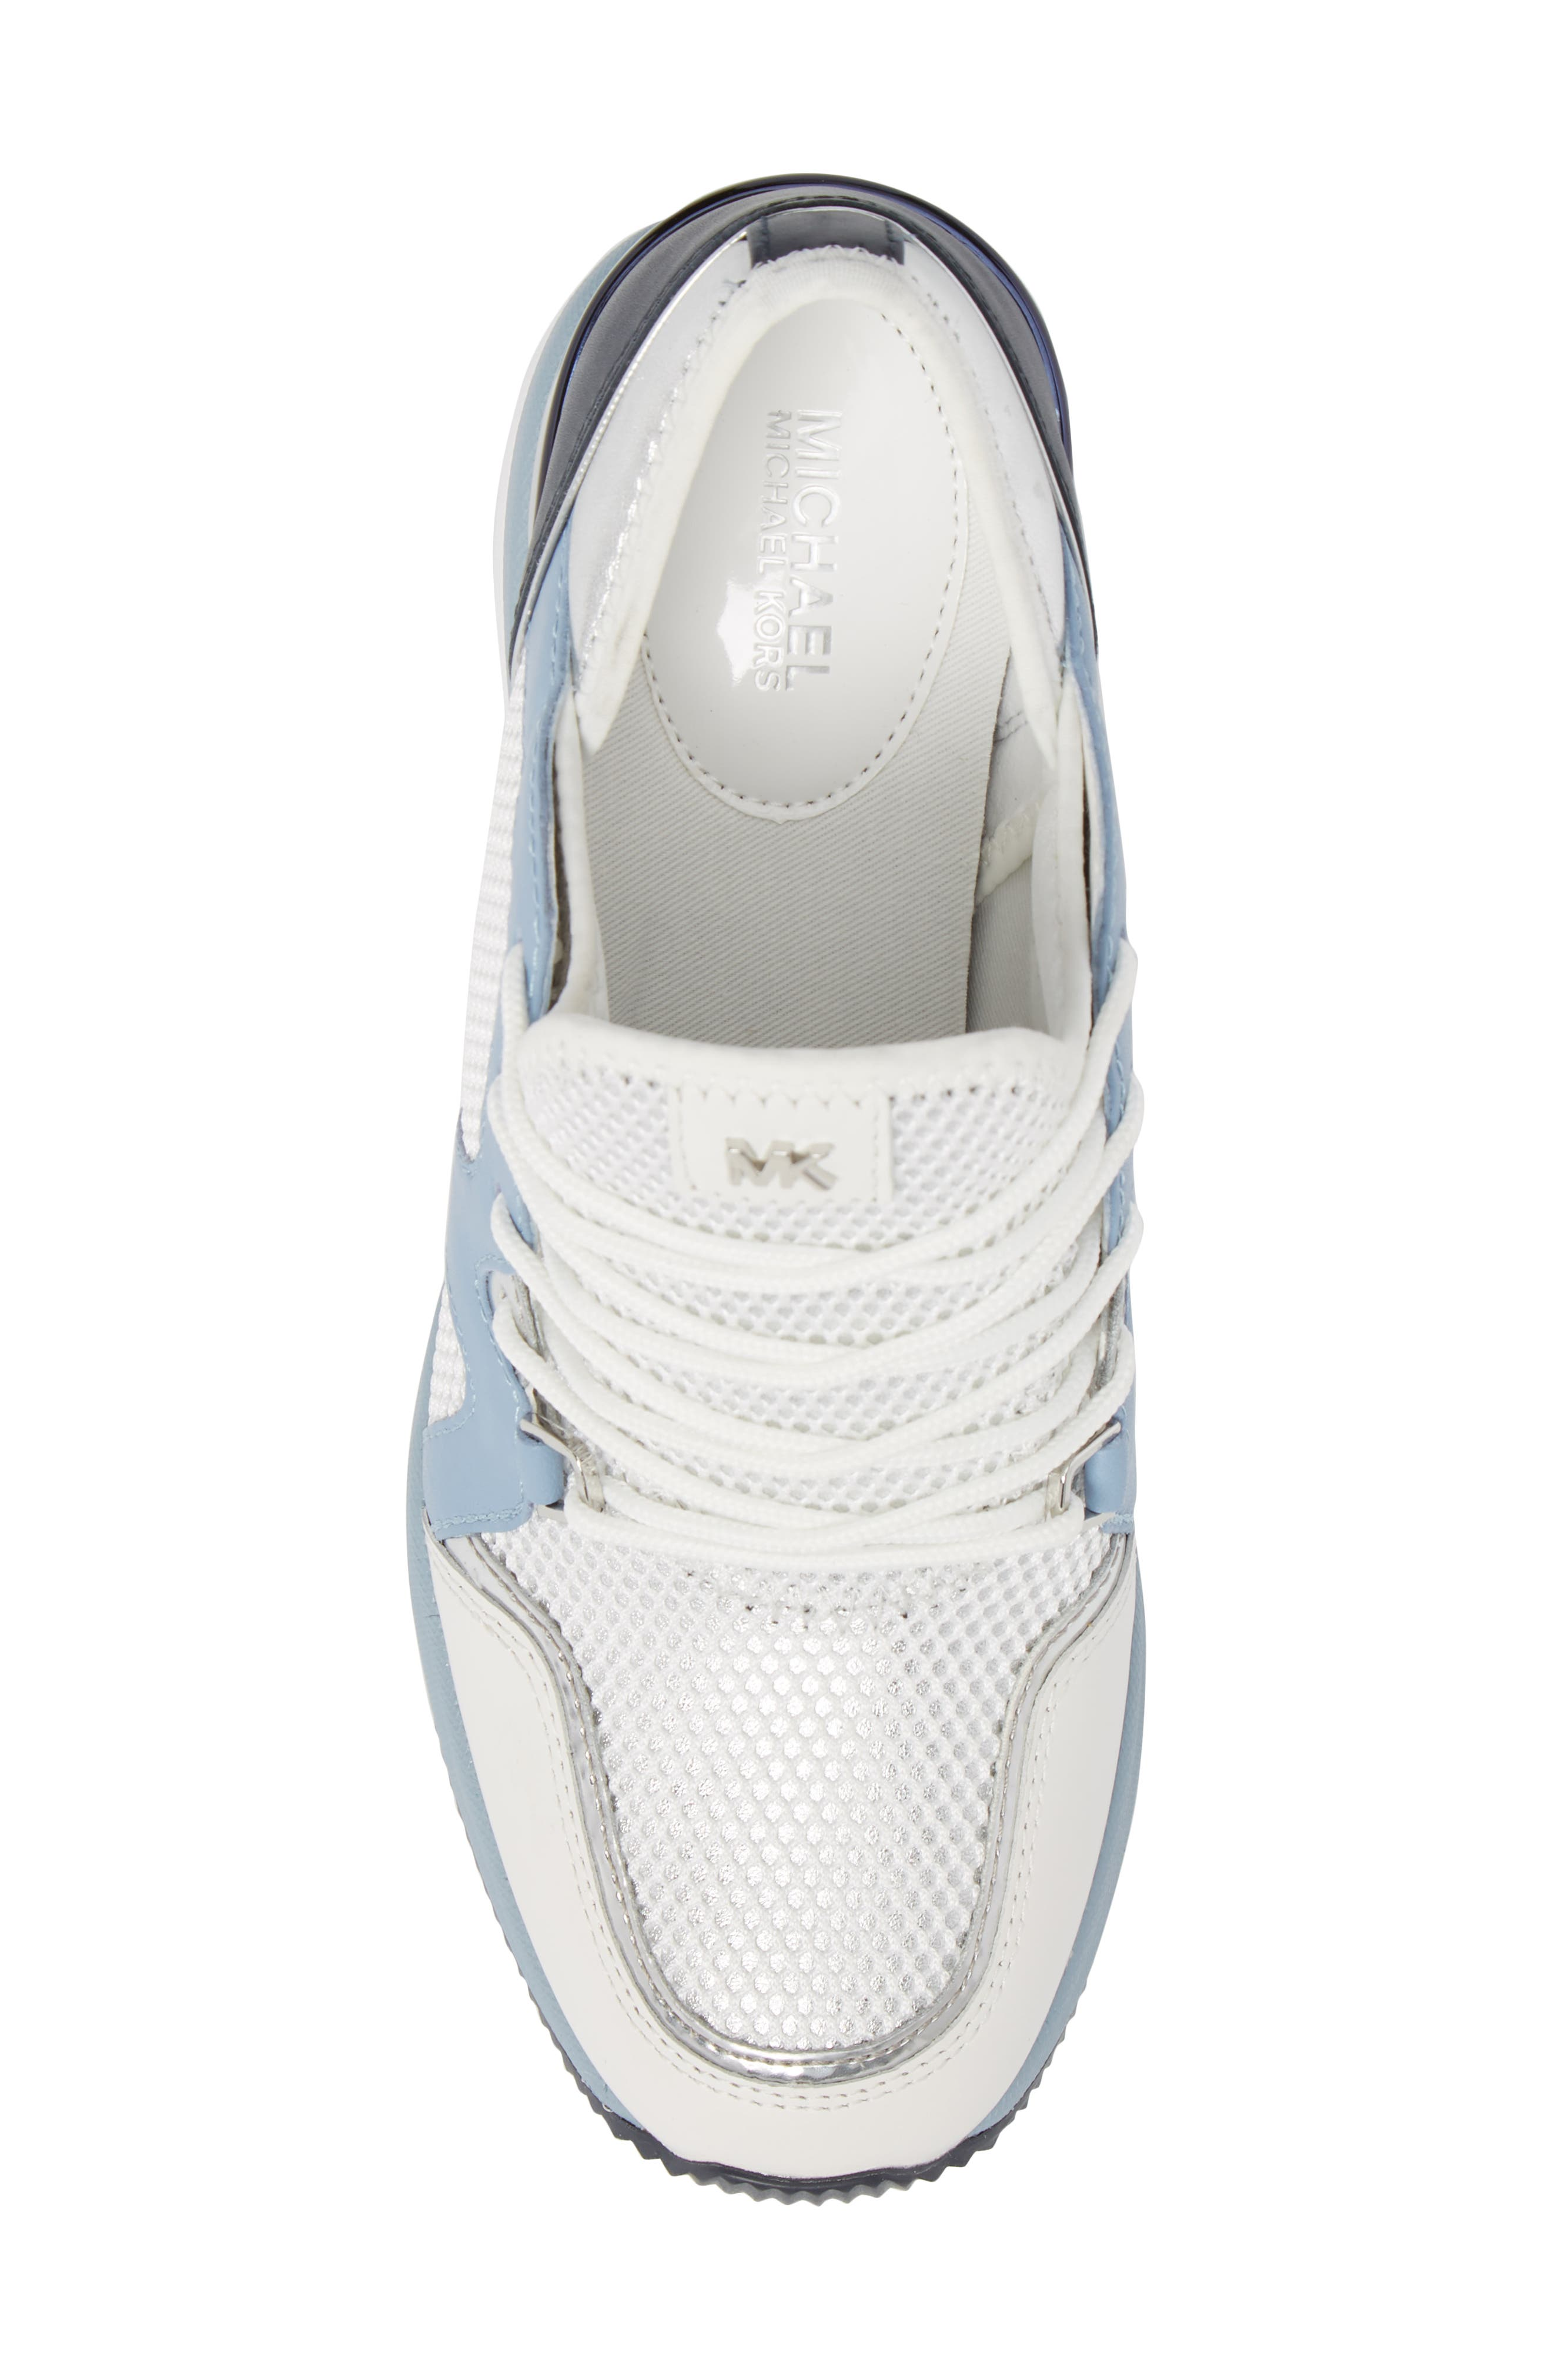 Scout Wedge Sneaker,                             Alternate thumbnail 5, color,                             429